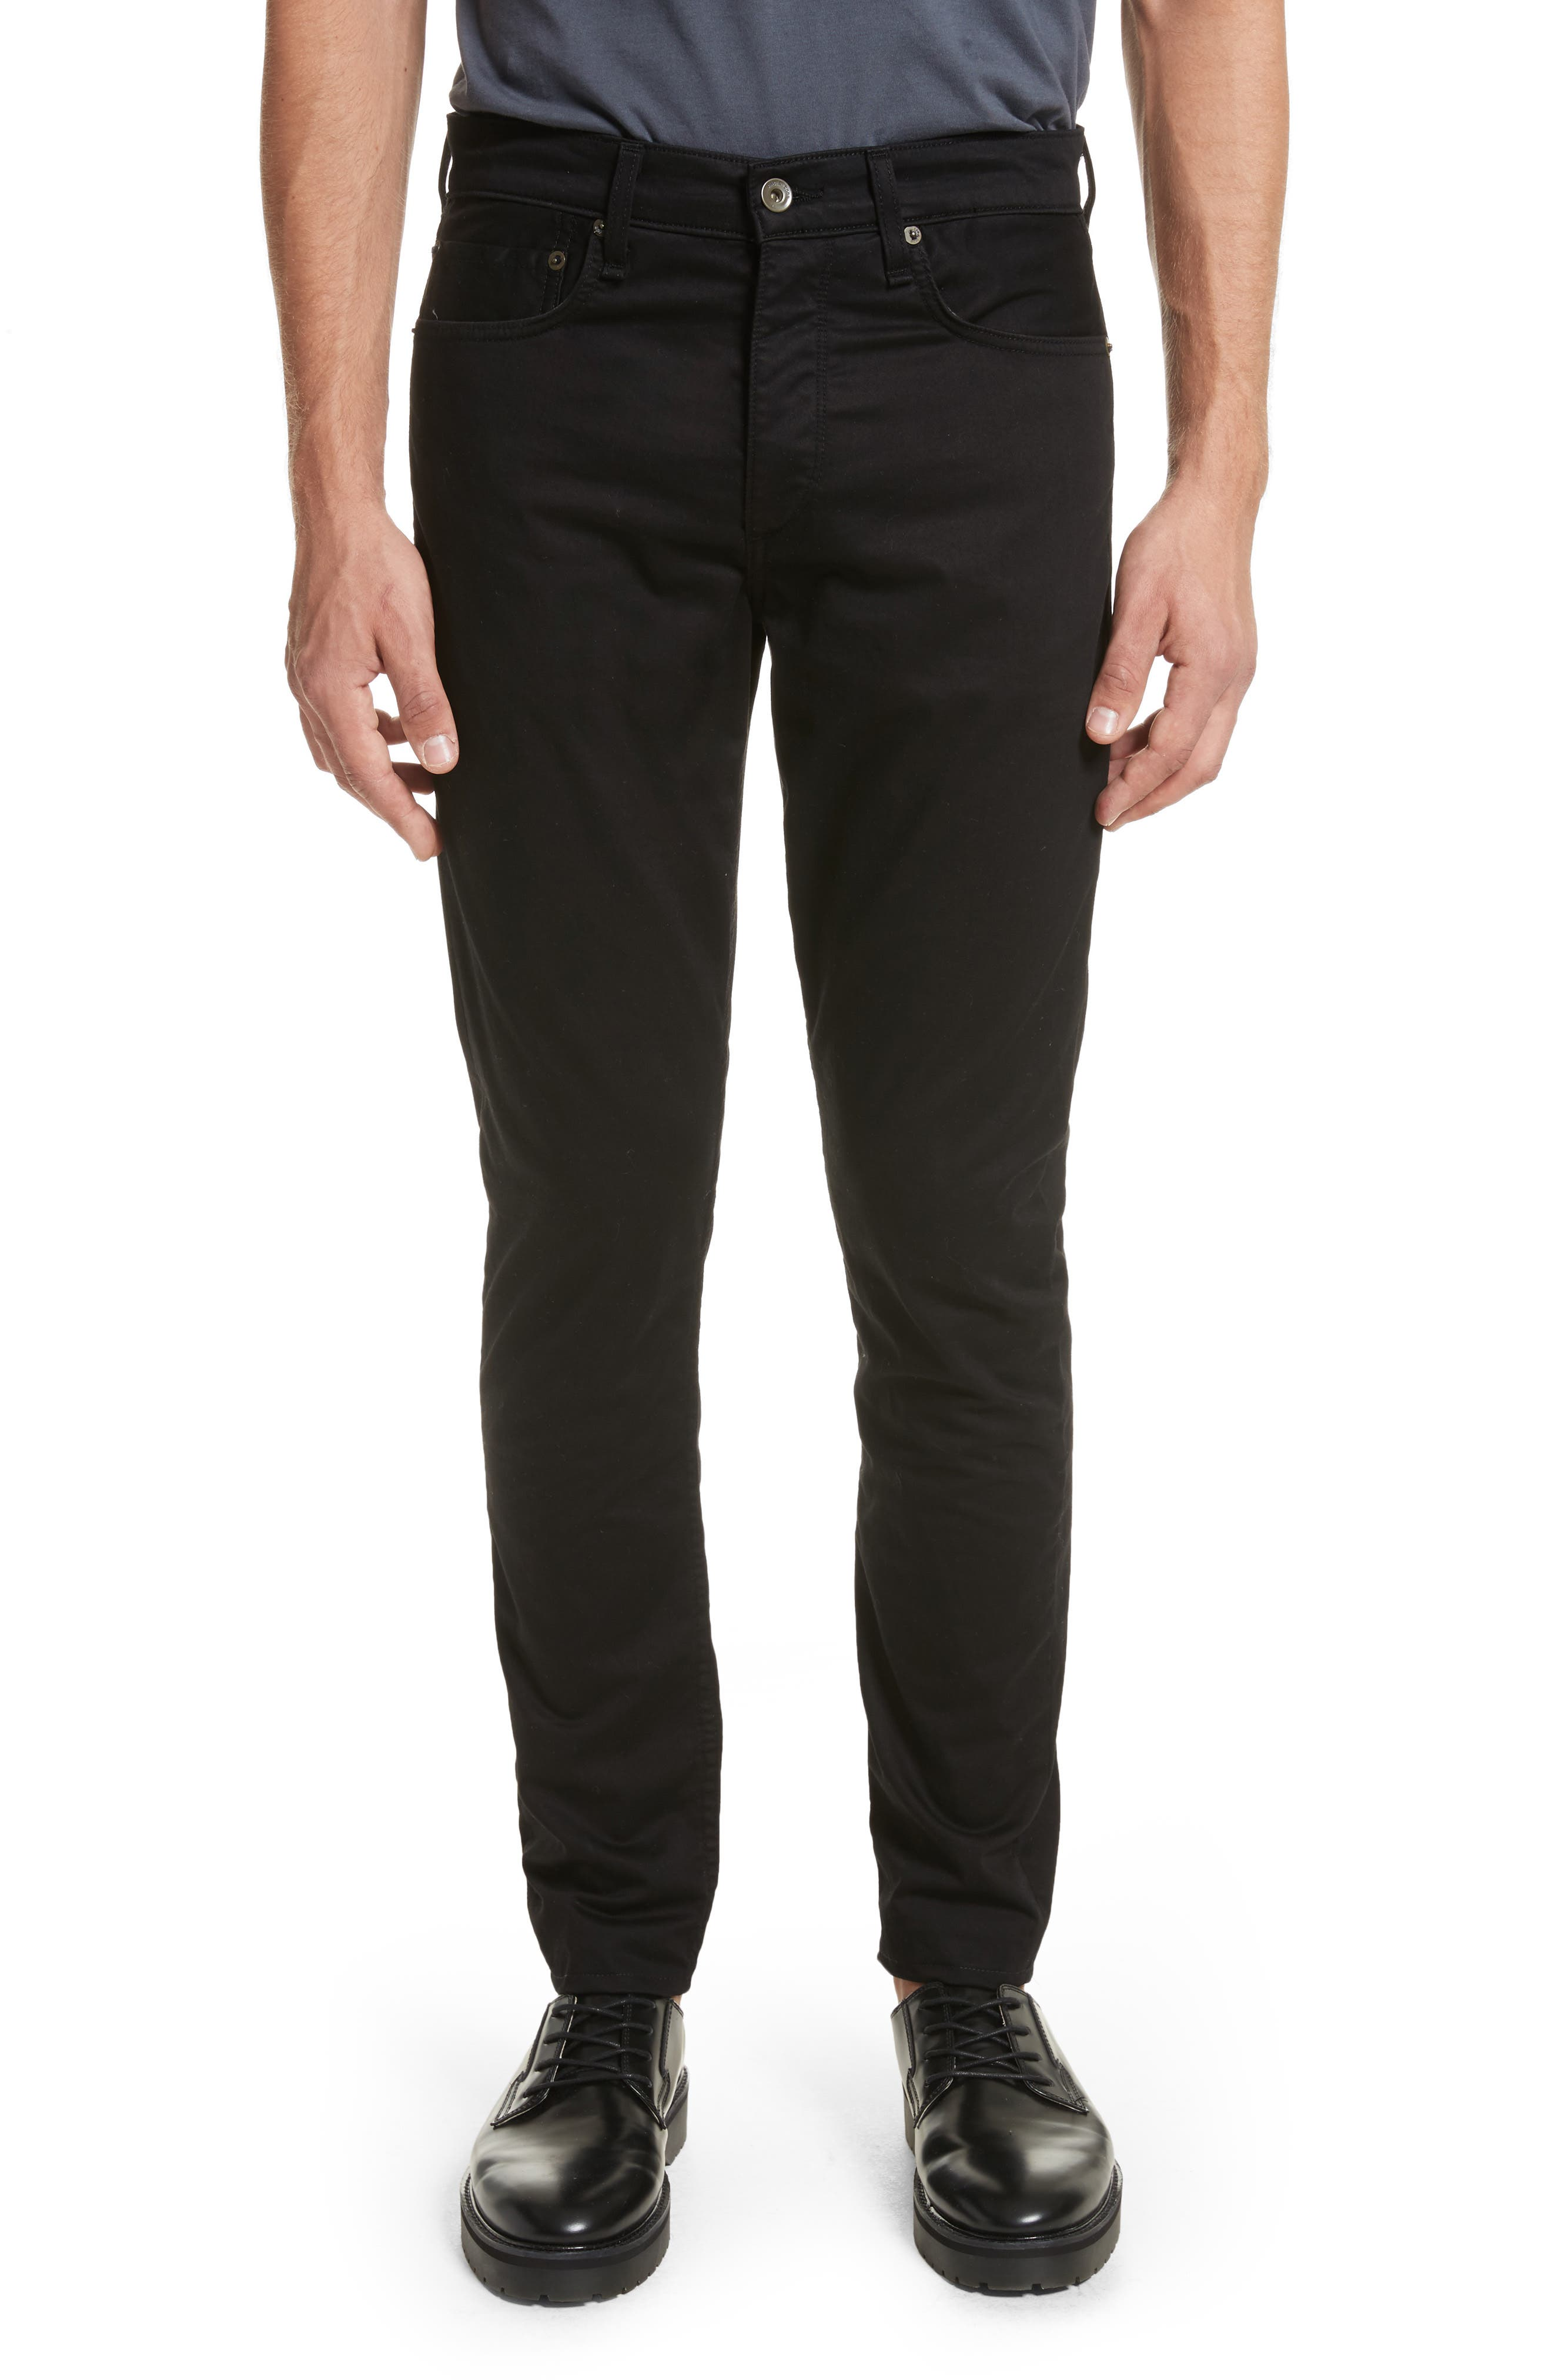 Fit 1 Twill Skinny Fit Pants,                         Main,                         color, 001